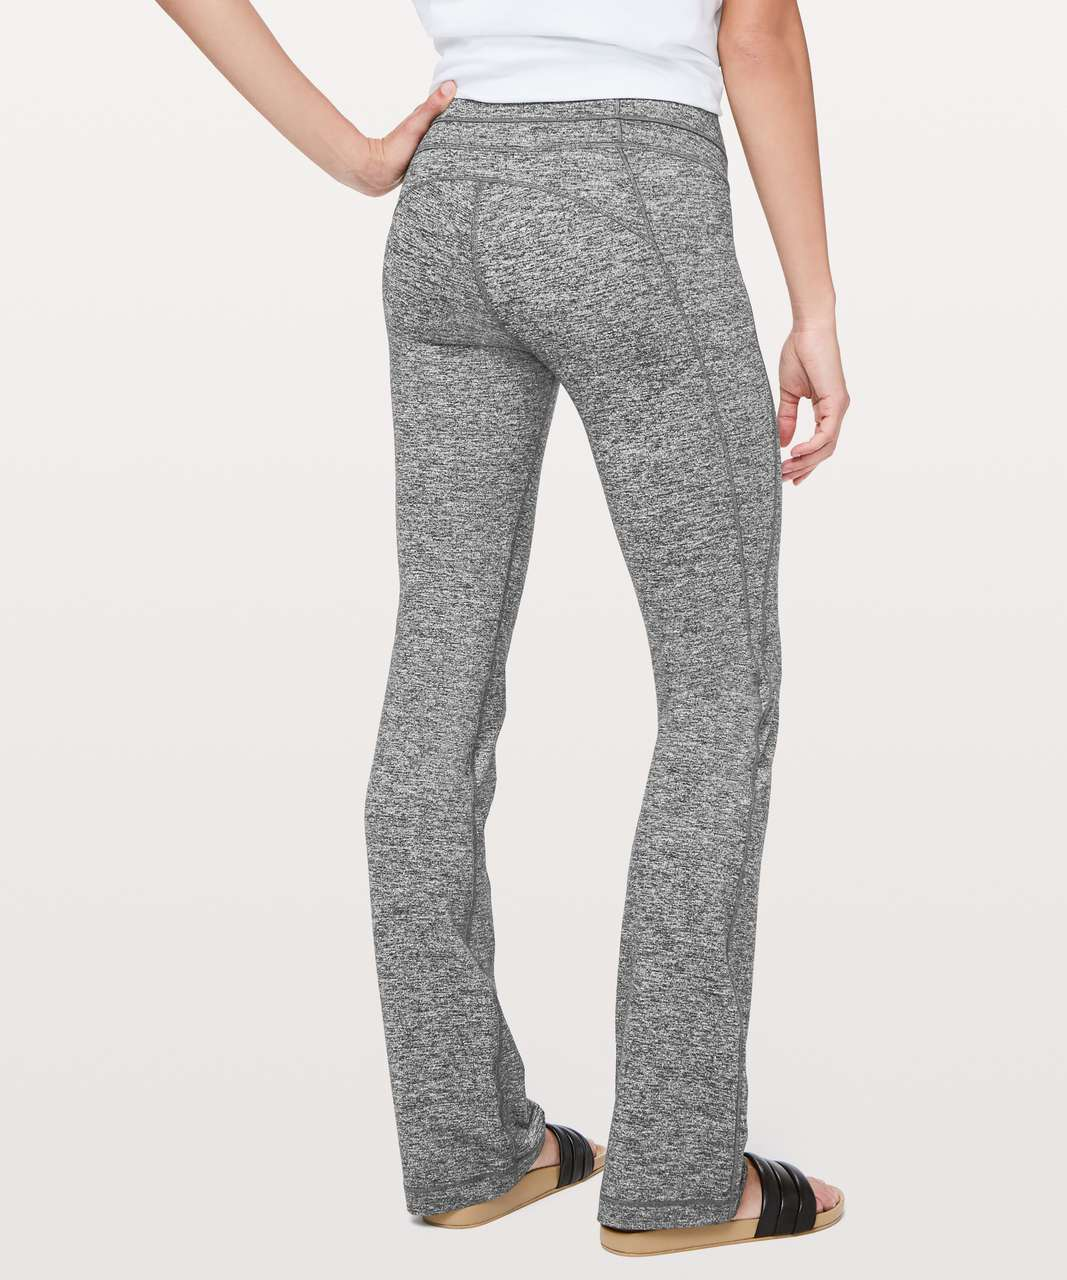 """Lululemon Groove Pant Bootcut 32"""" - Heathered Black (First Release)"""